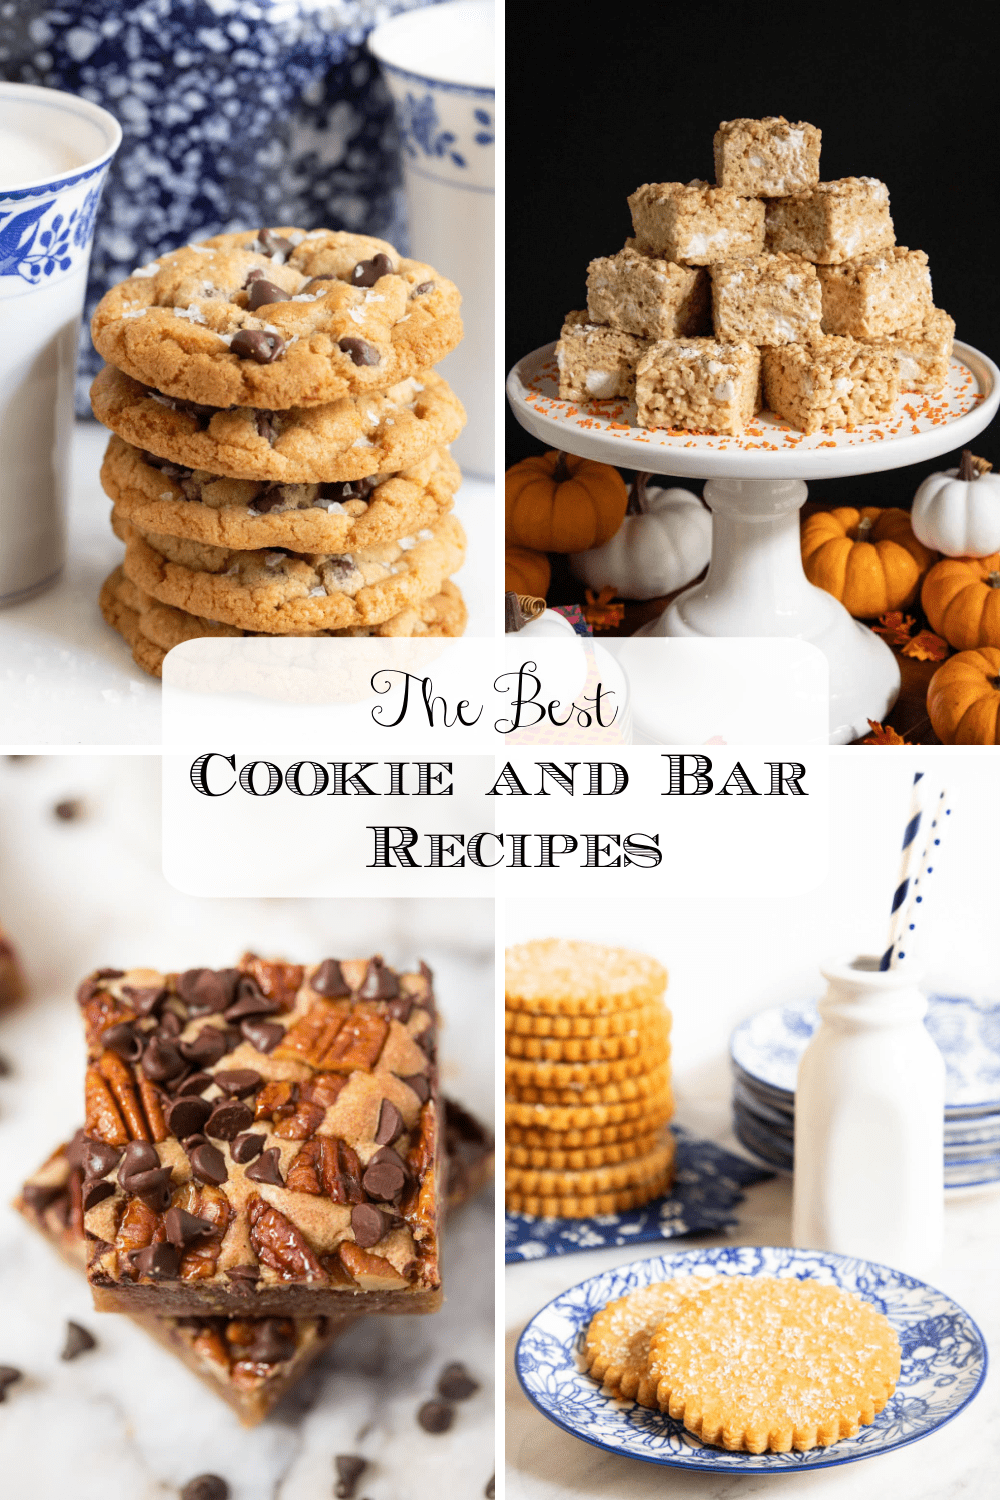 Joy from the Oven - Our Best Cookies and Bars